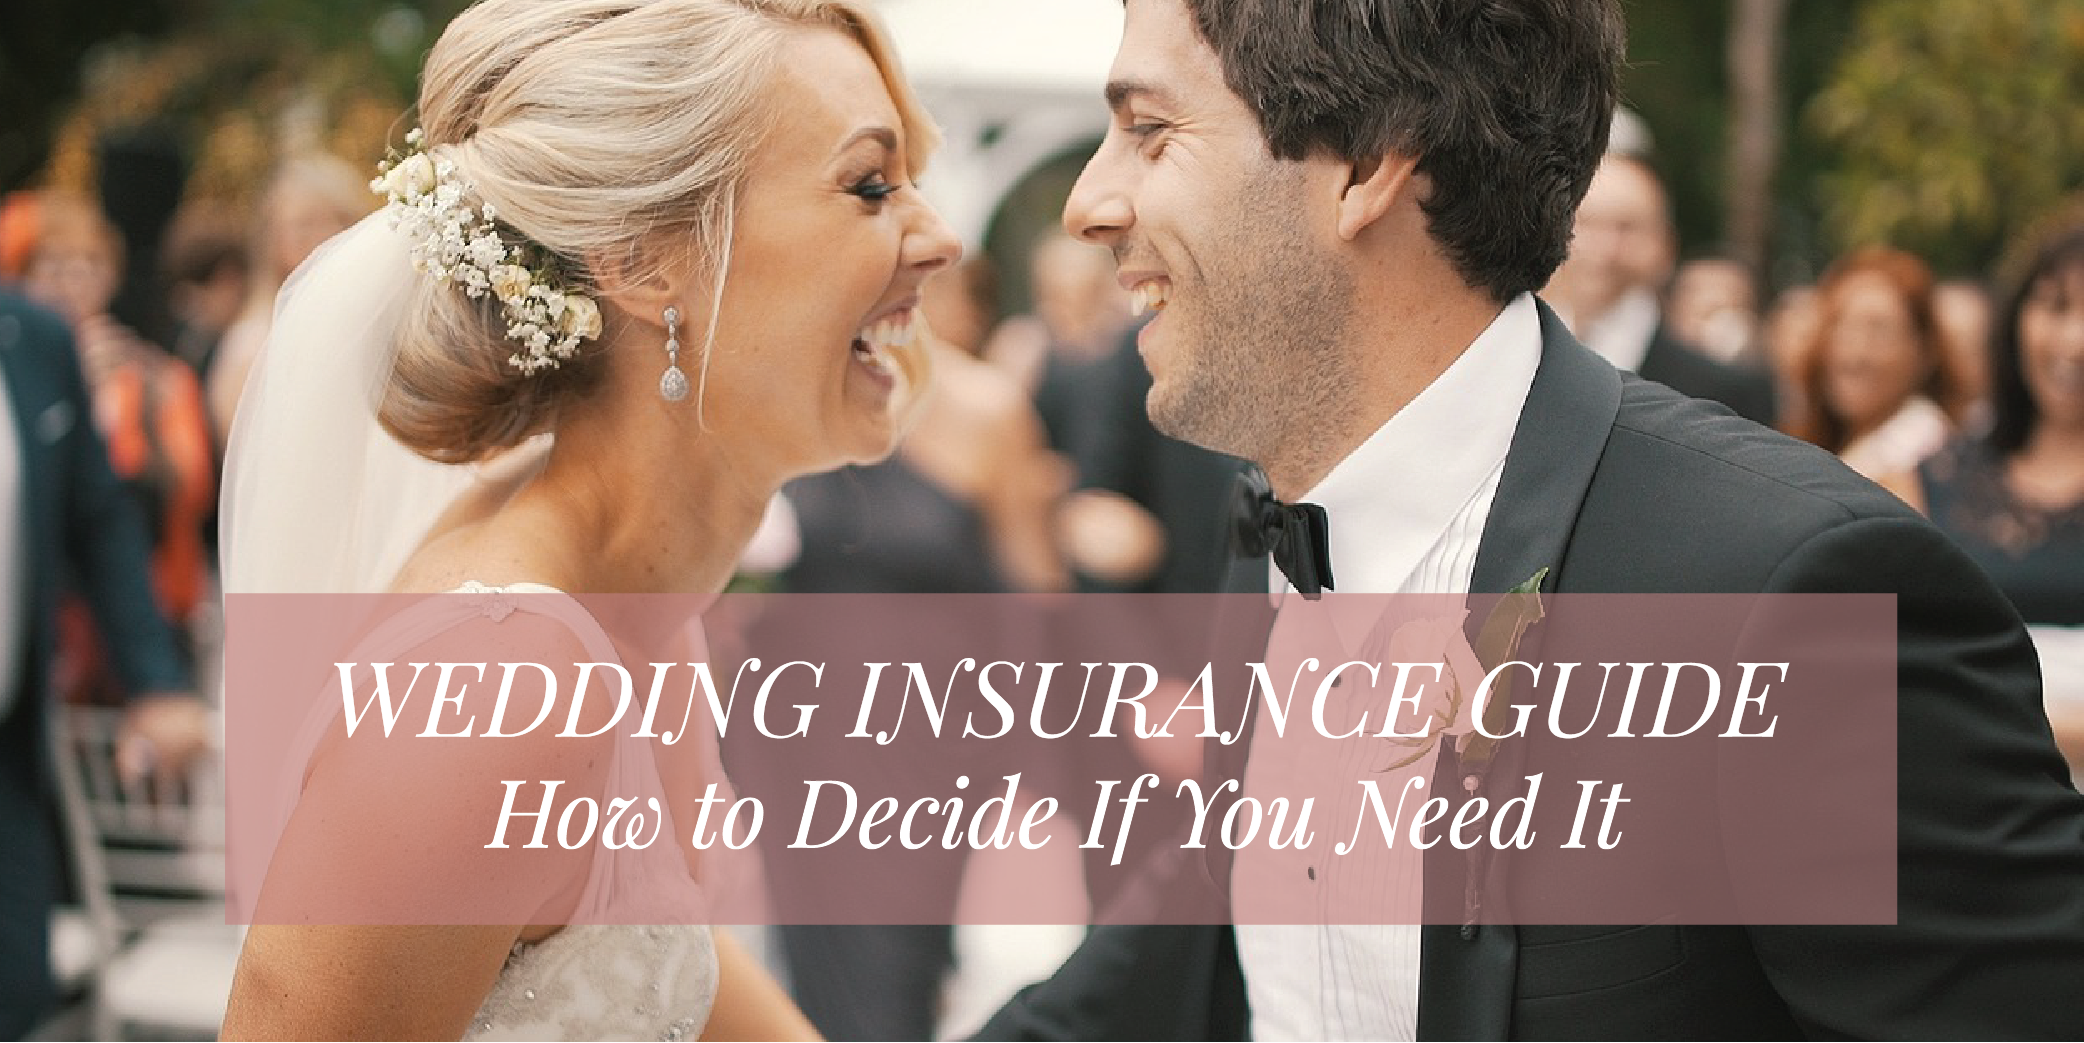 Wedding Insurance Guide